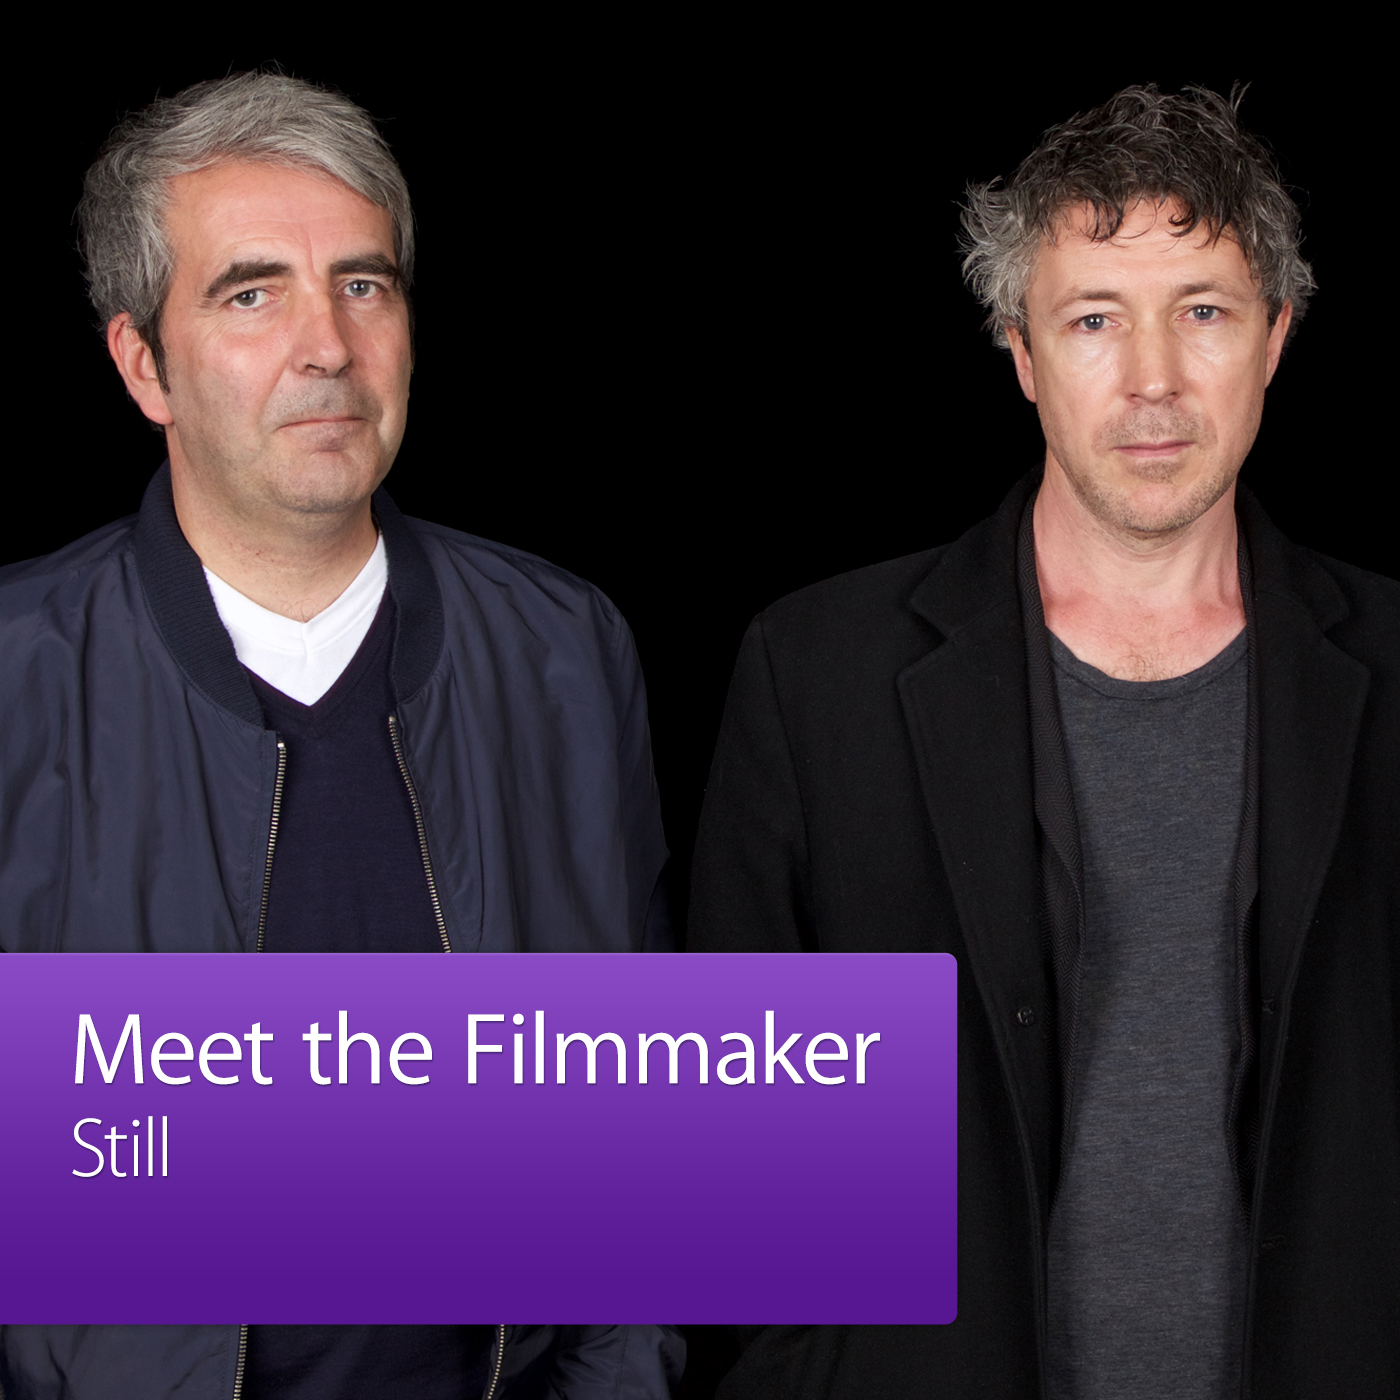 Still: Meet the Filmmaker